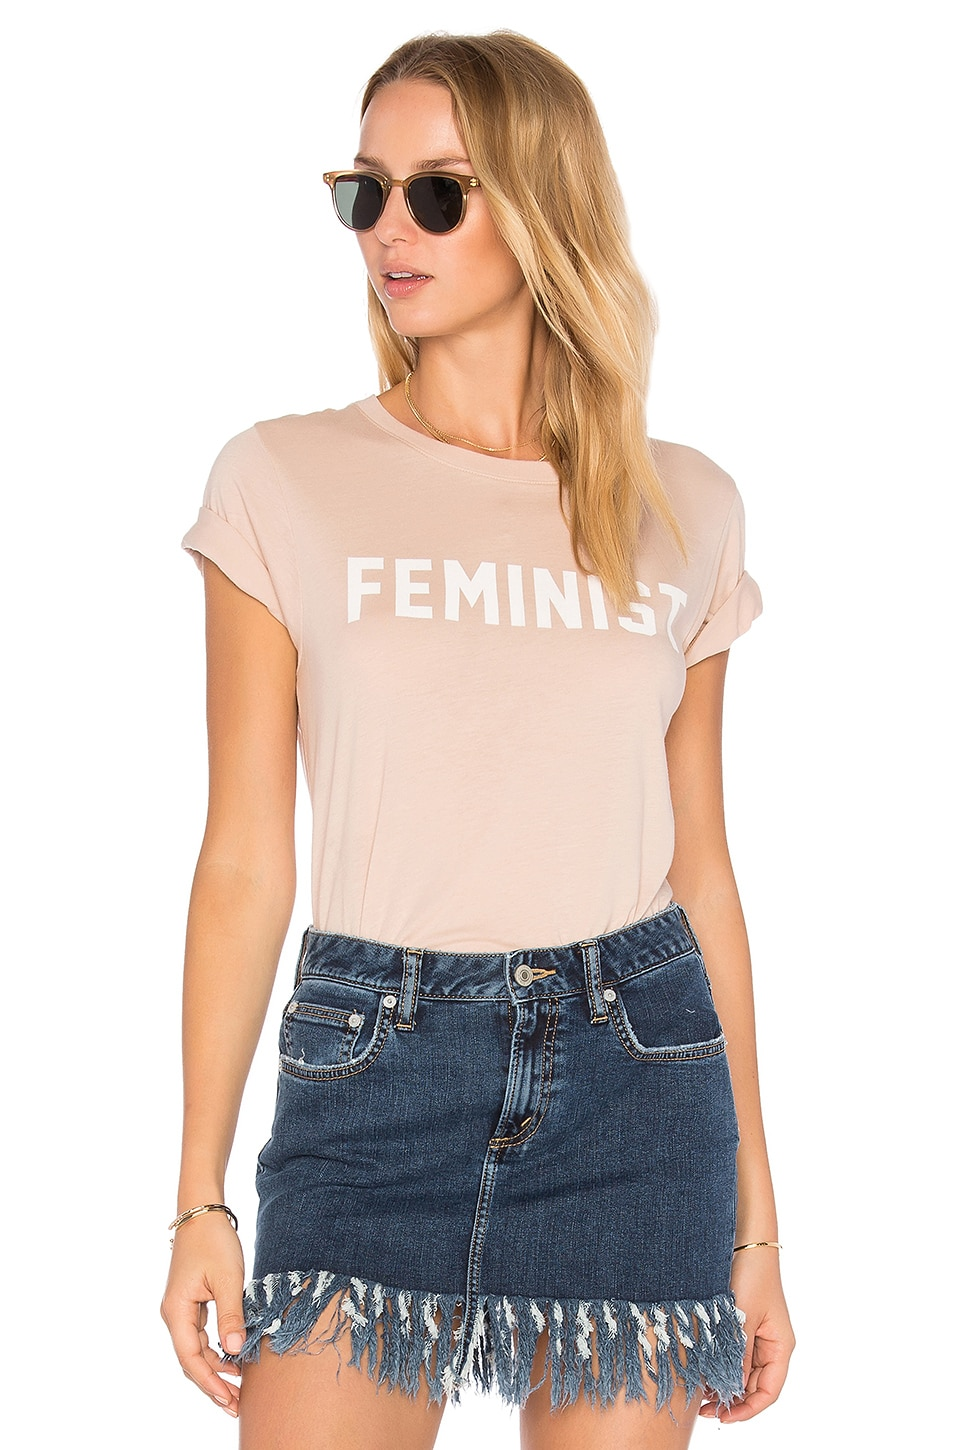 DAYDREAMER Feminist Tee in Toasted Almond